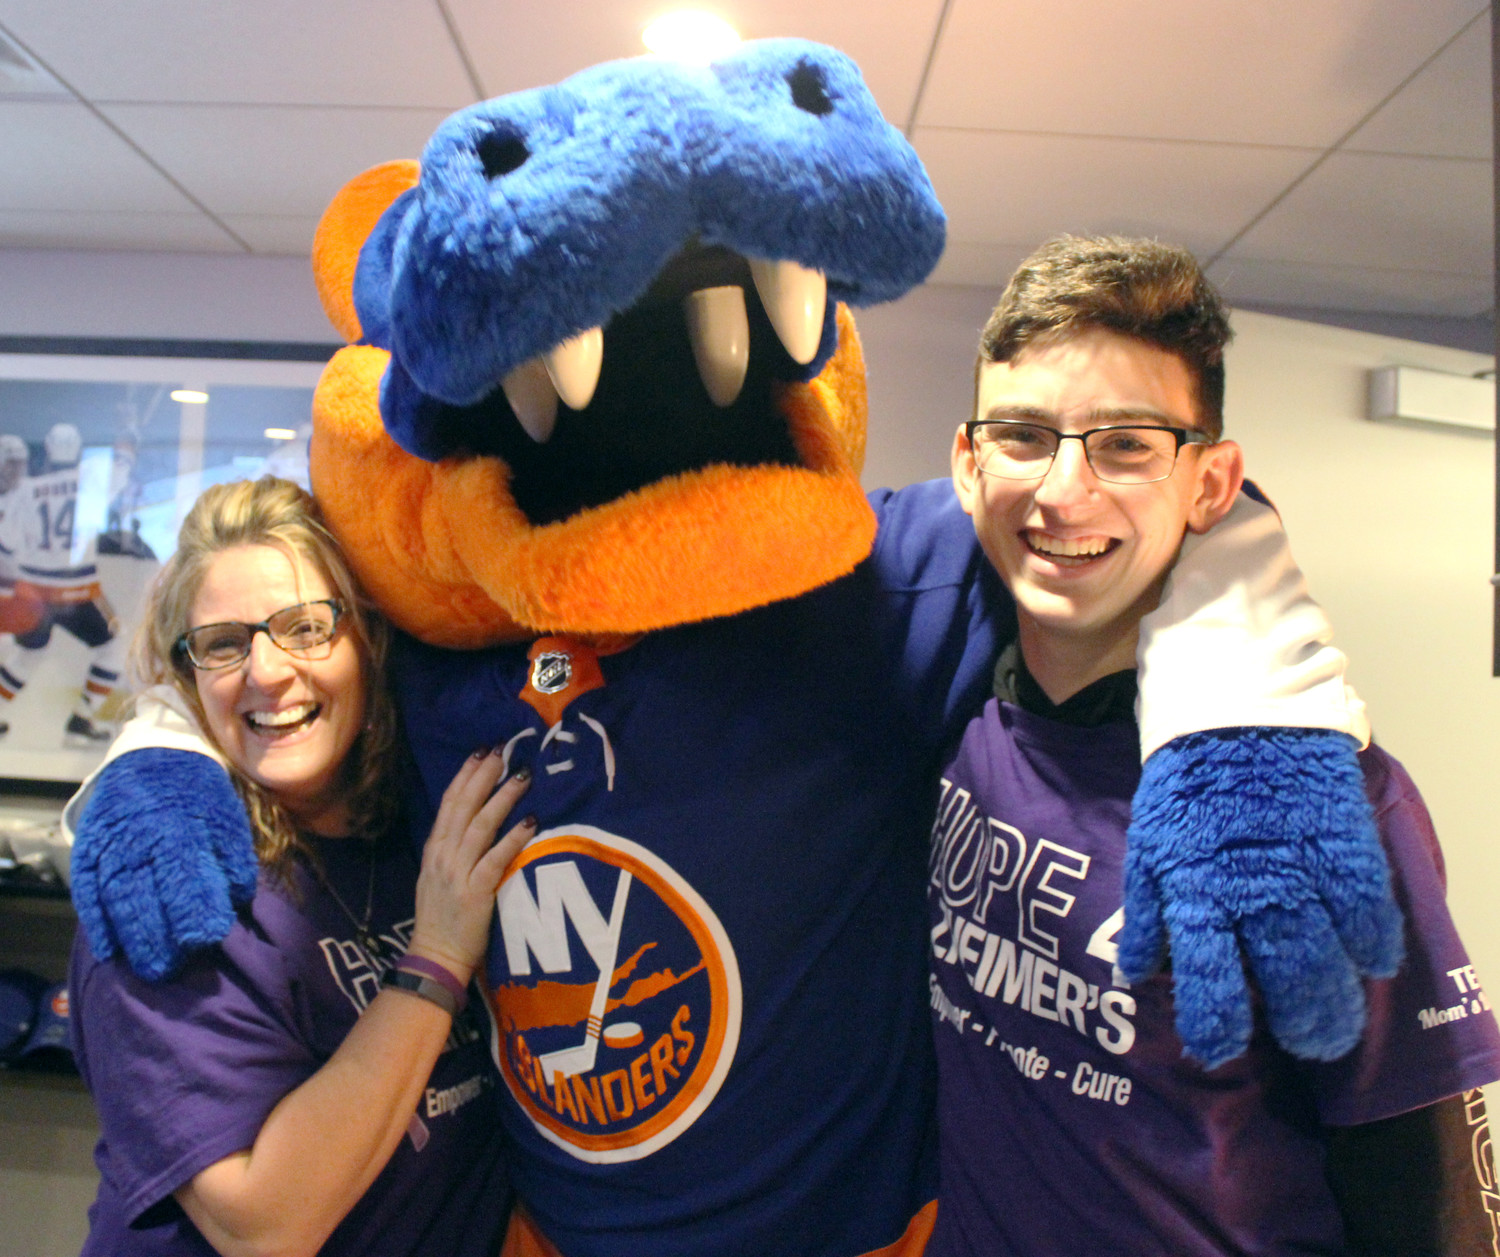 Judy Gronin, 52, of Shirley, and her son Dale, 16, made friends with Sparky, the Islanders mascot, when the hockey team joined the Long Island chapter of the Alzheimer's Association for Alzheimer's Awareness Night on Jan. 3 at Nassau Coliseum.